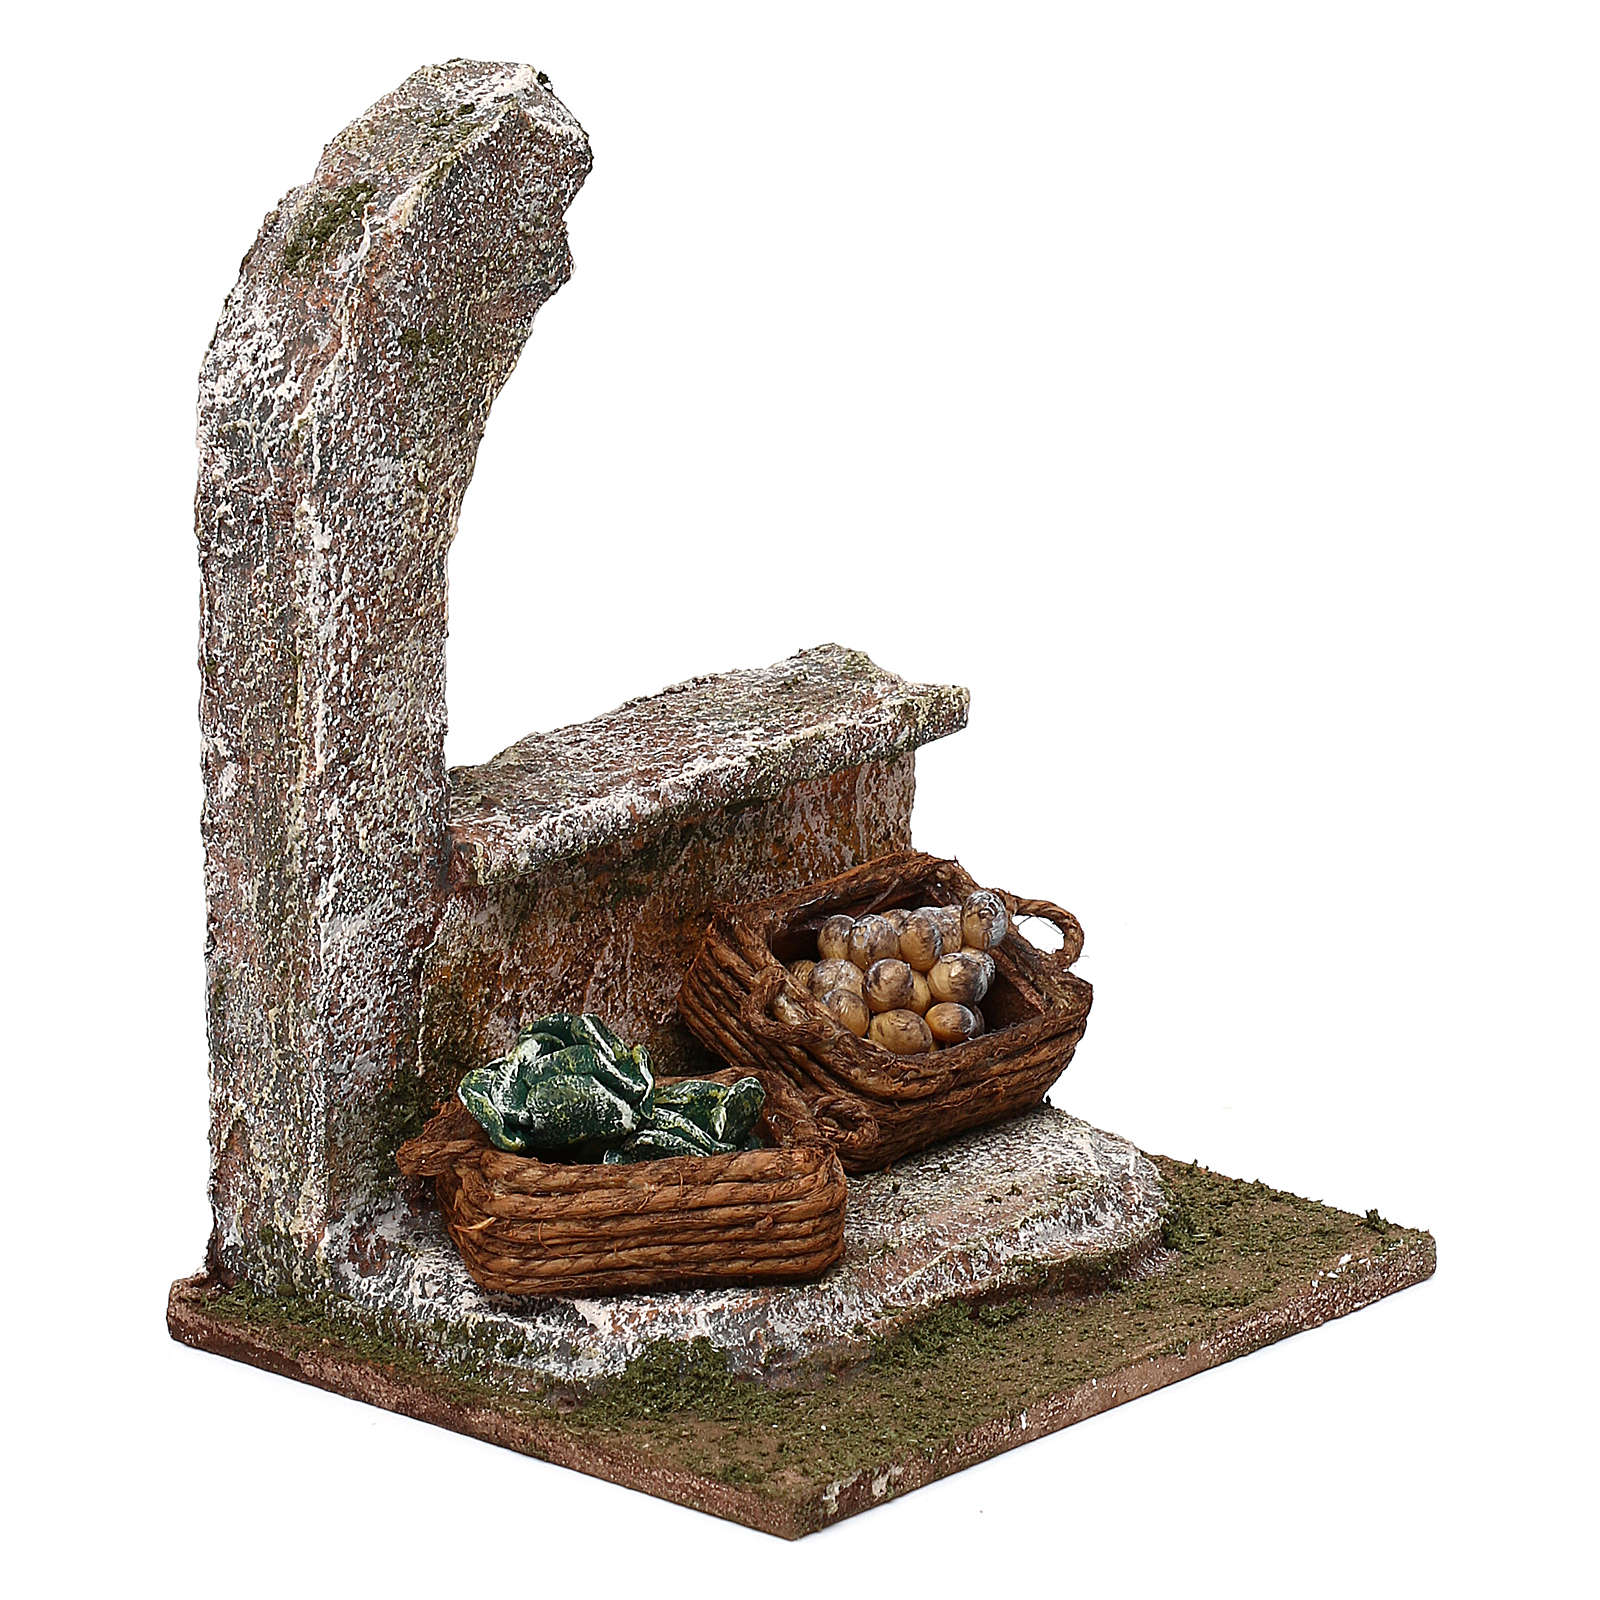 Half-arch with vegetables for 12 cm Nativity scene, 15x10x10 cm 4